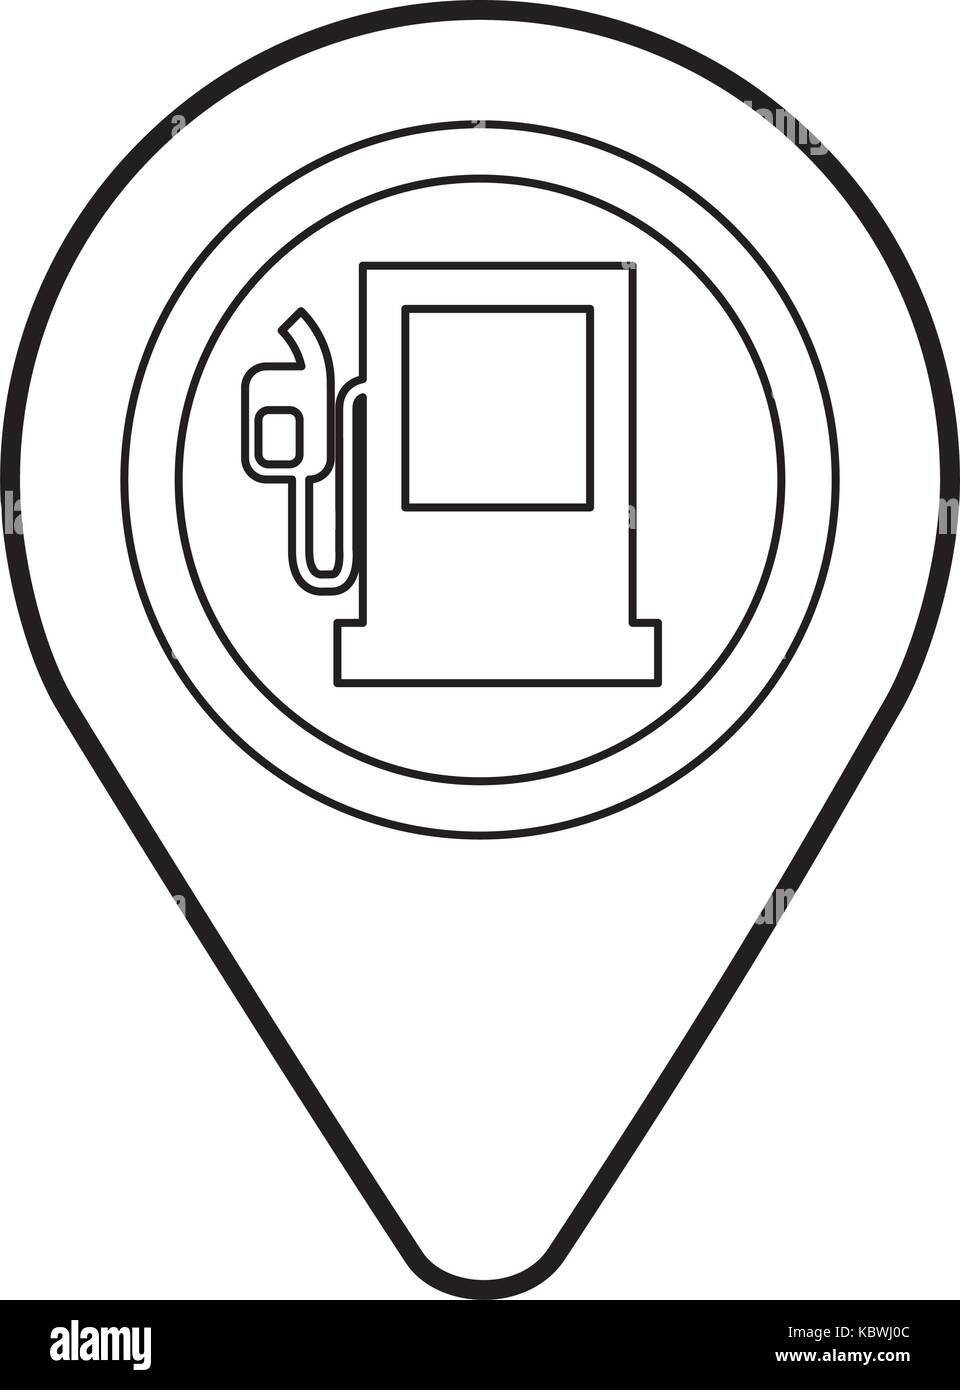 map pin with gas station application sign icon - Stock Image